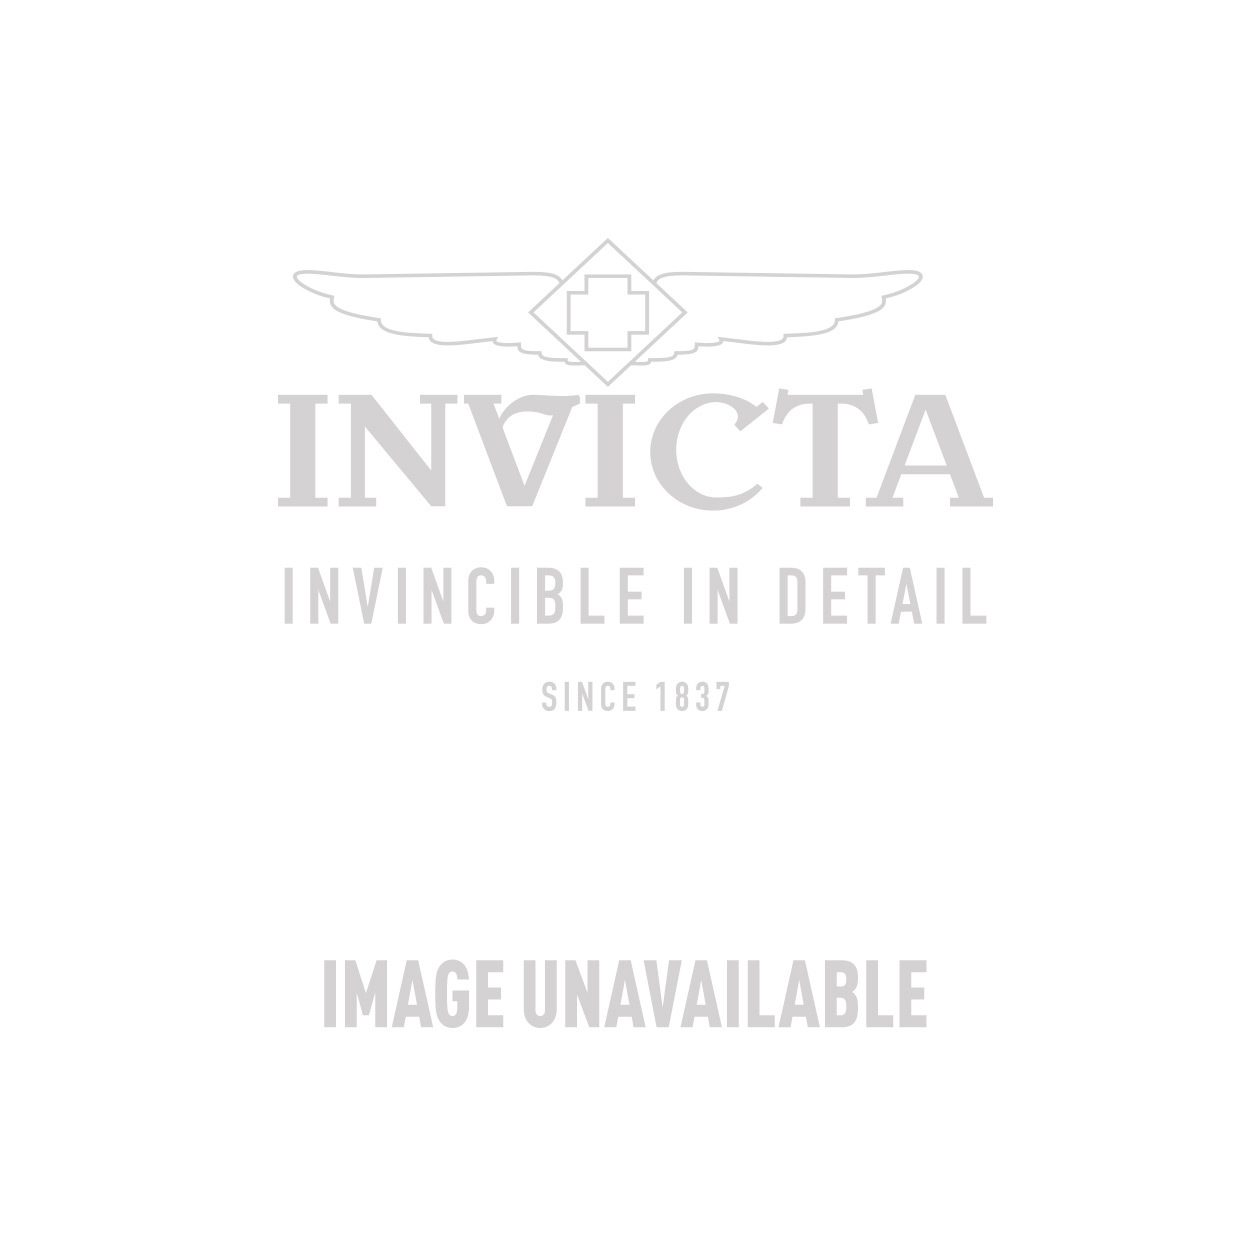 Invicta Corduba Swiss Movement Quartz Watch - Rose Gold, Stainless Steel case Stainless Steel band - Model 18865